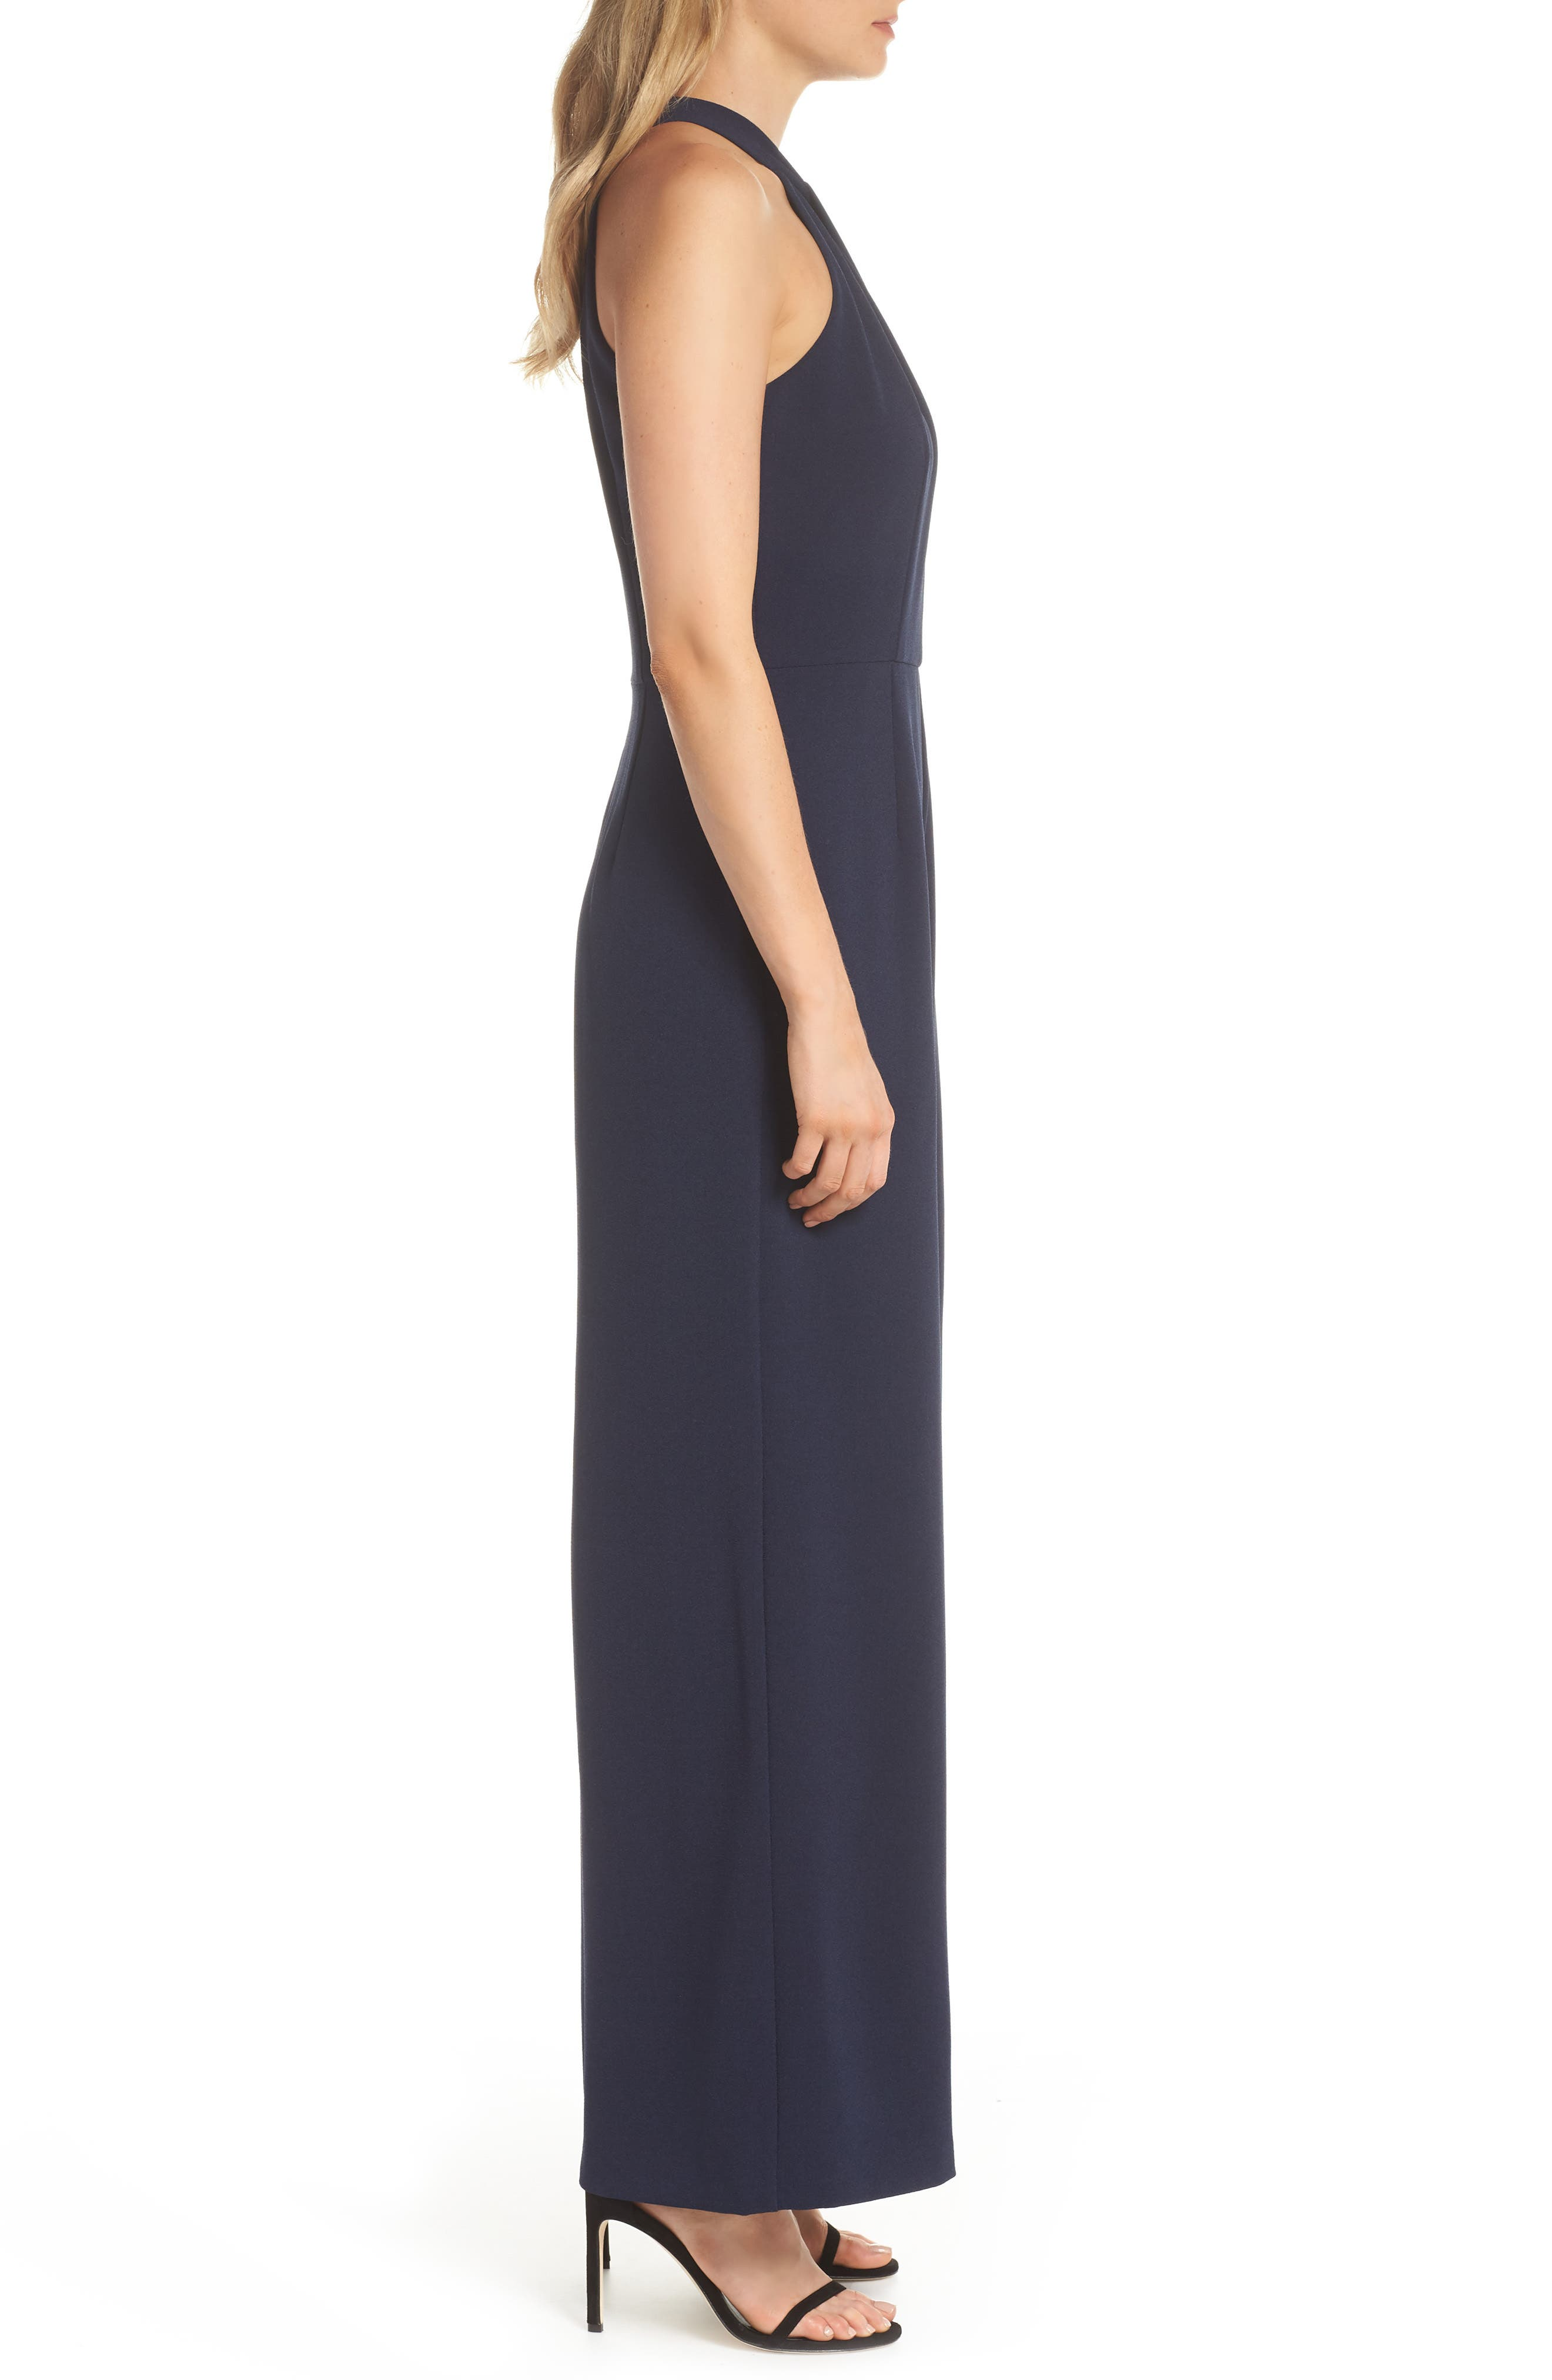 JULIA JORDAN, Halter Wide Leg Jumpsuit, Alternate thumbnail 3, color, NAVY